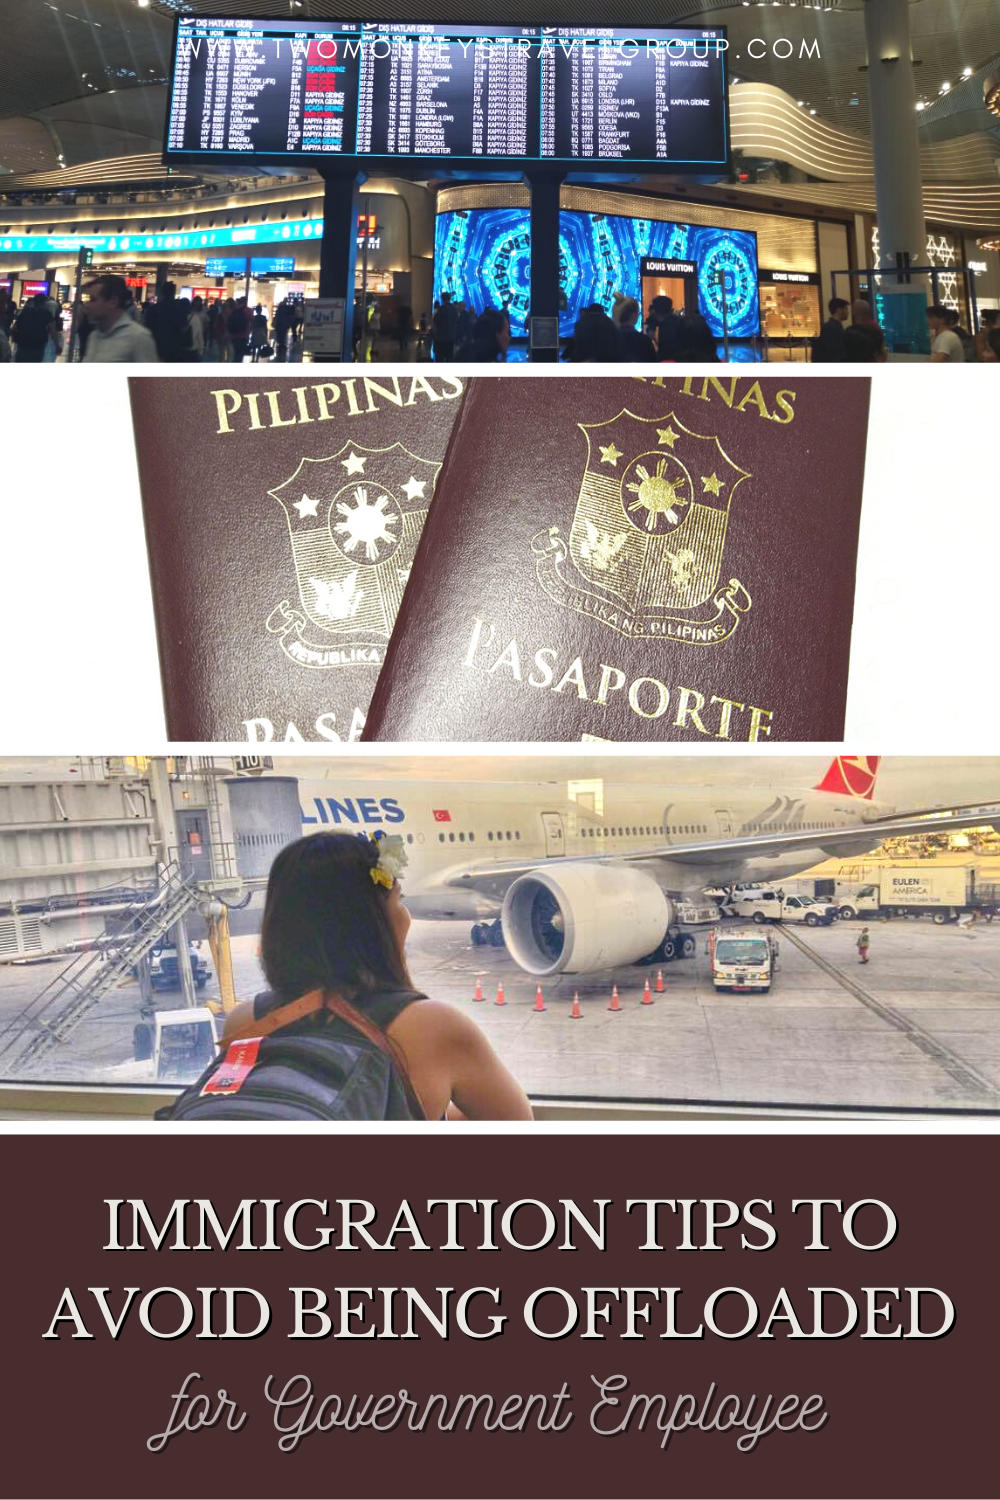 Philippine Government Employee Immigration Tips to Avoid Being Offloaded